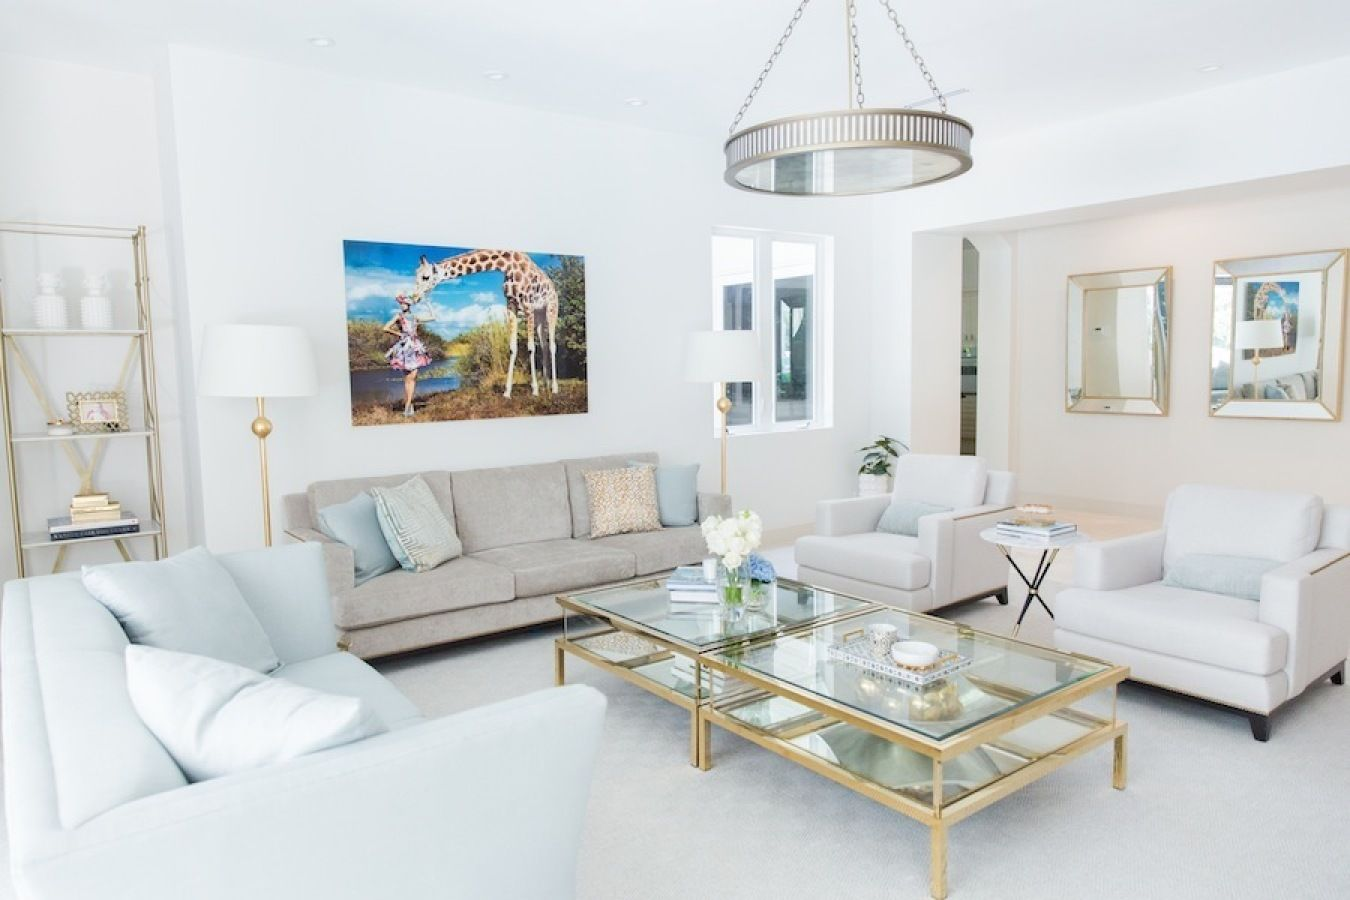 Tour a Home that Has Miami Style Glamour Down to a Gilded Science ...